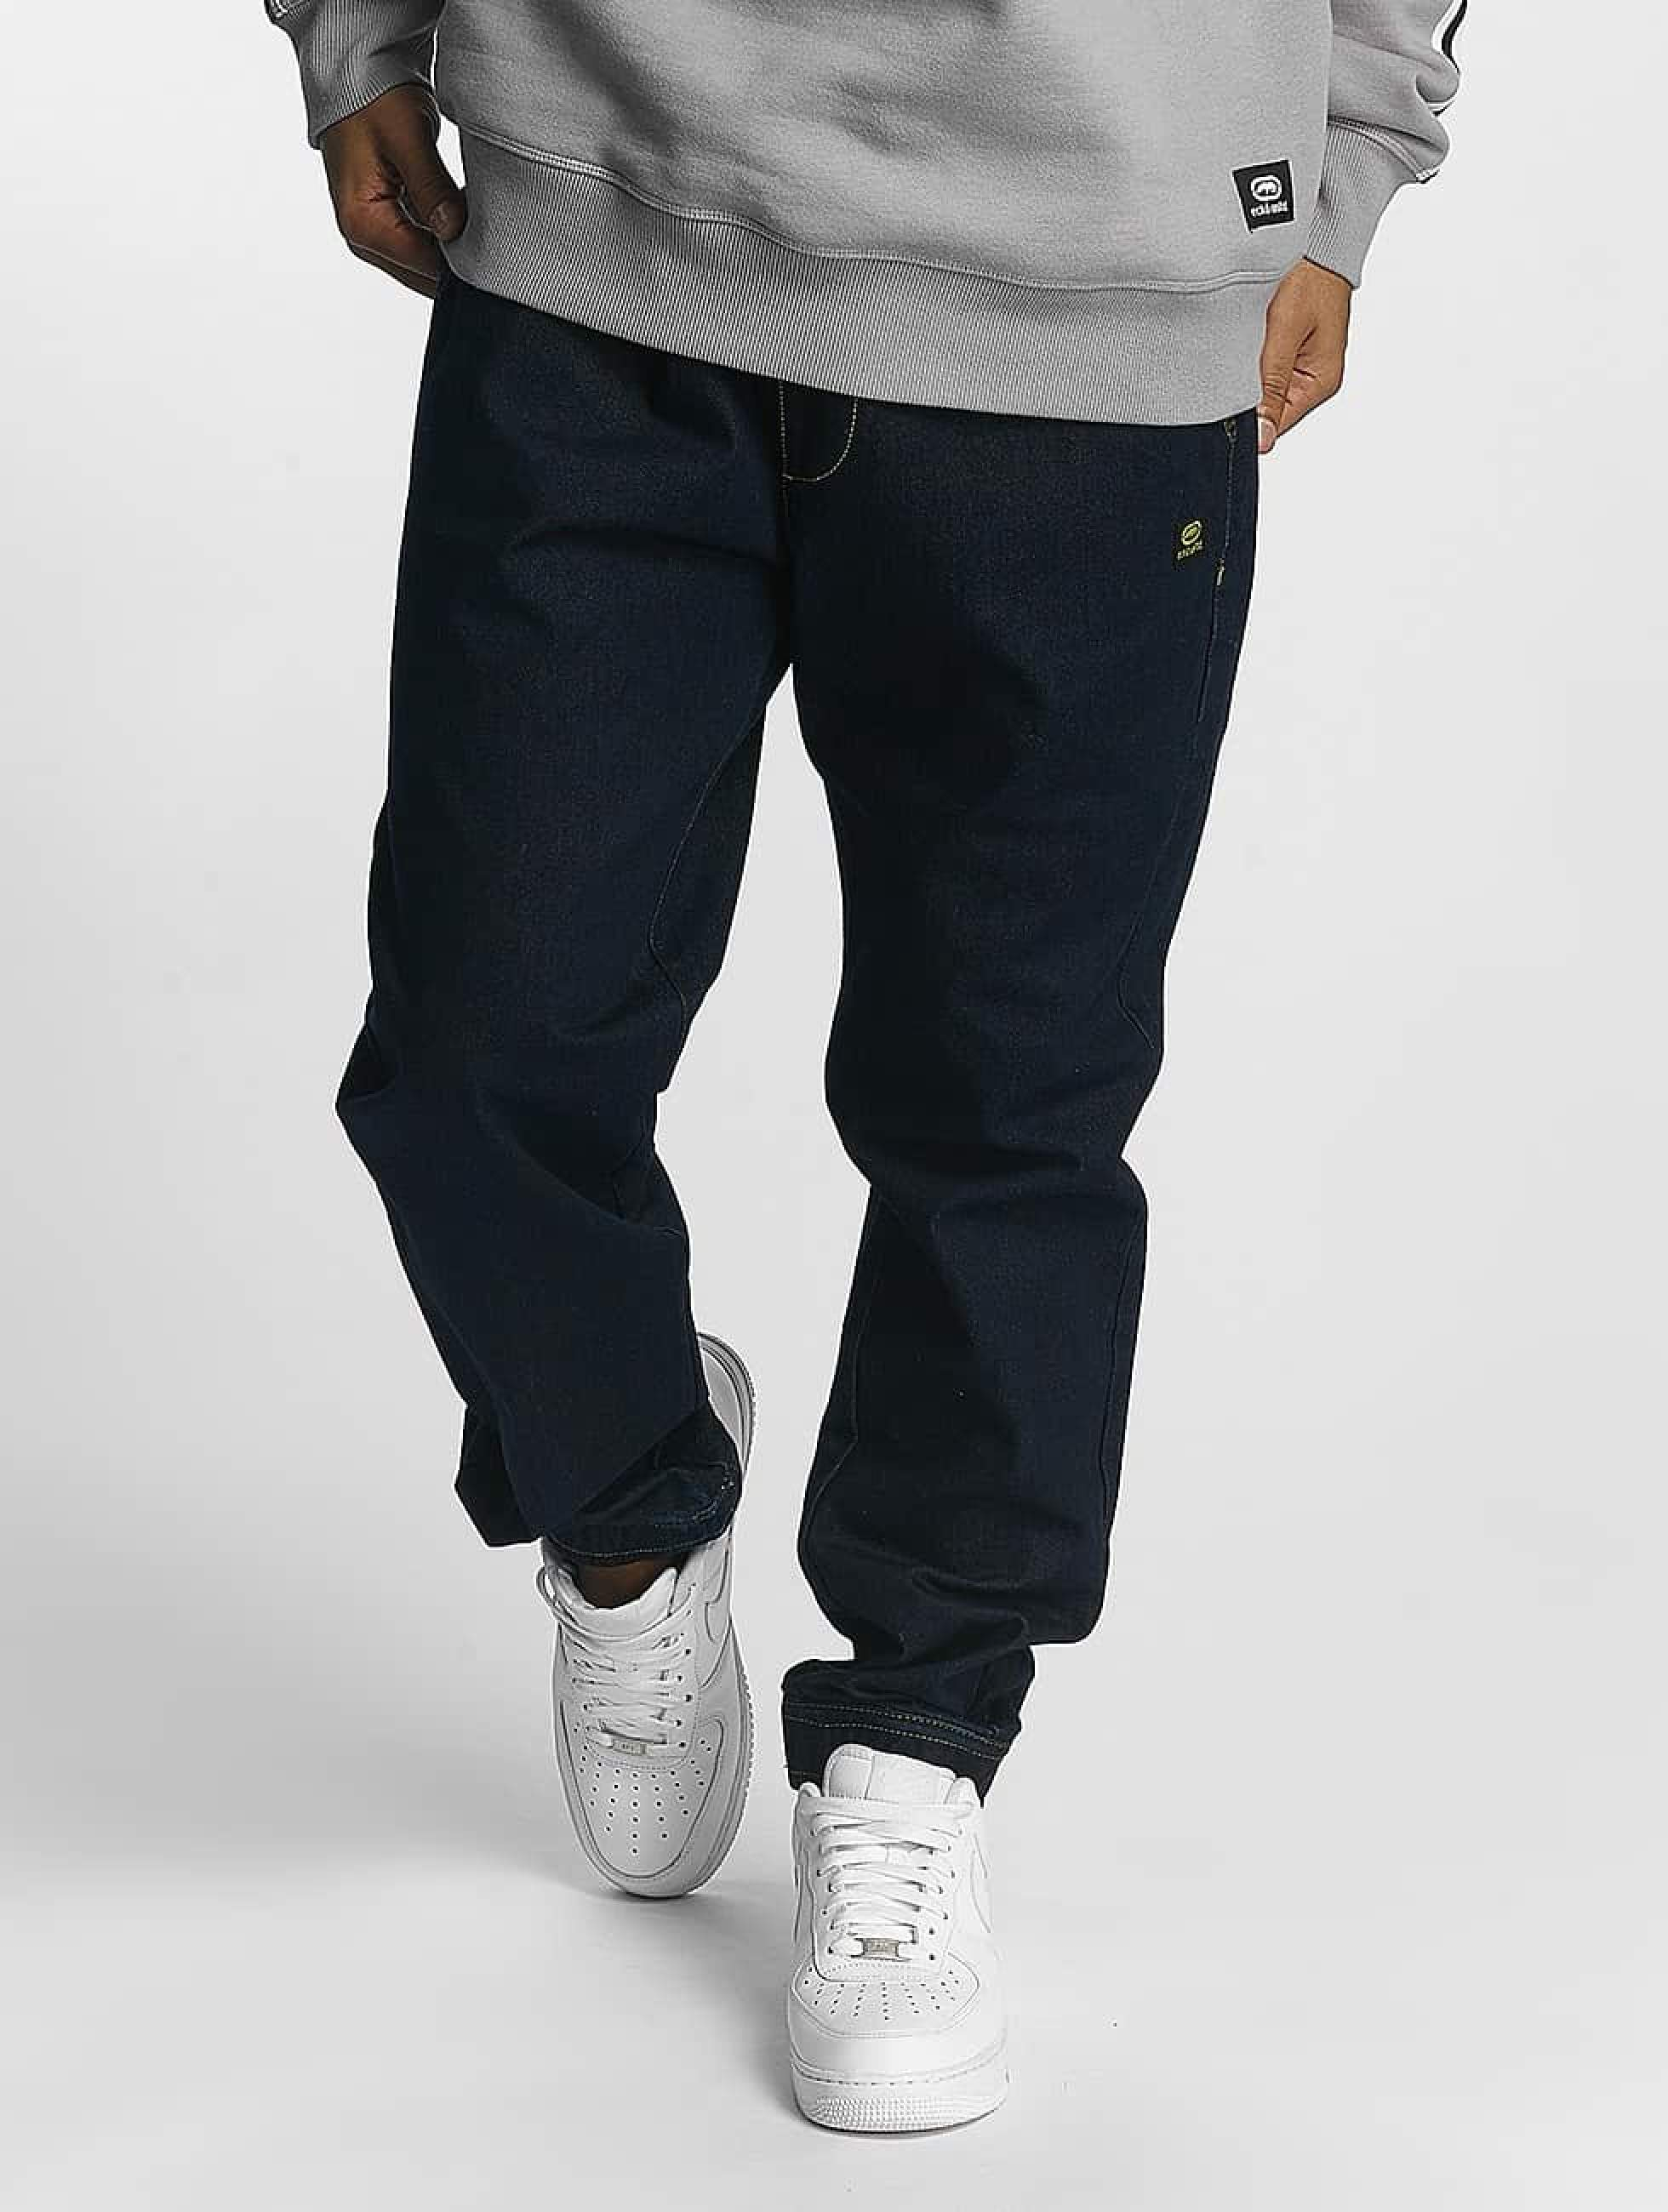 Ecko Unltd. / Antifit Clifton Denim in indigo W 38 L 34